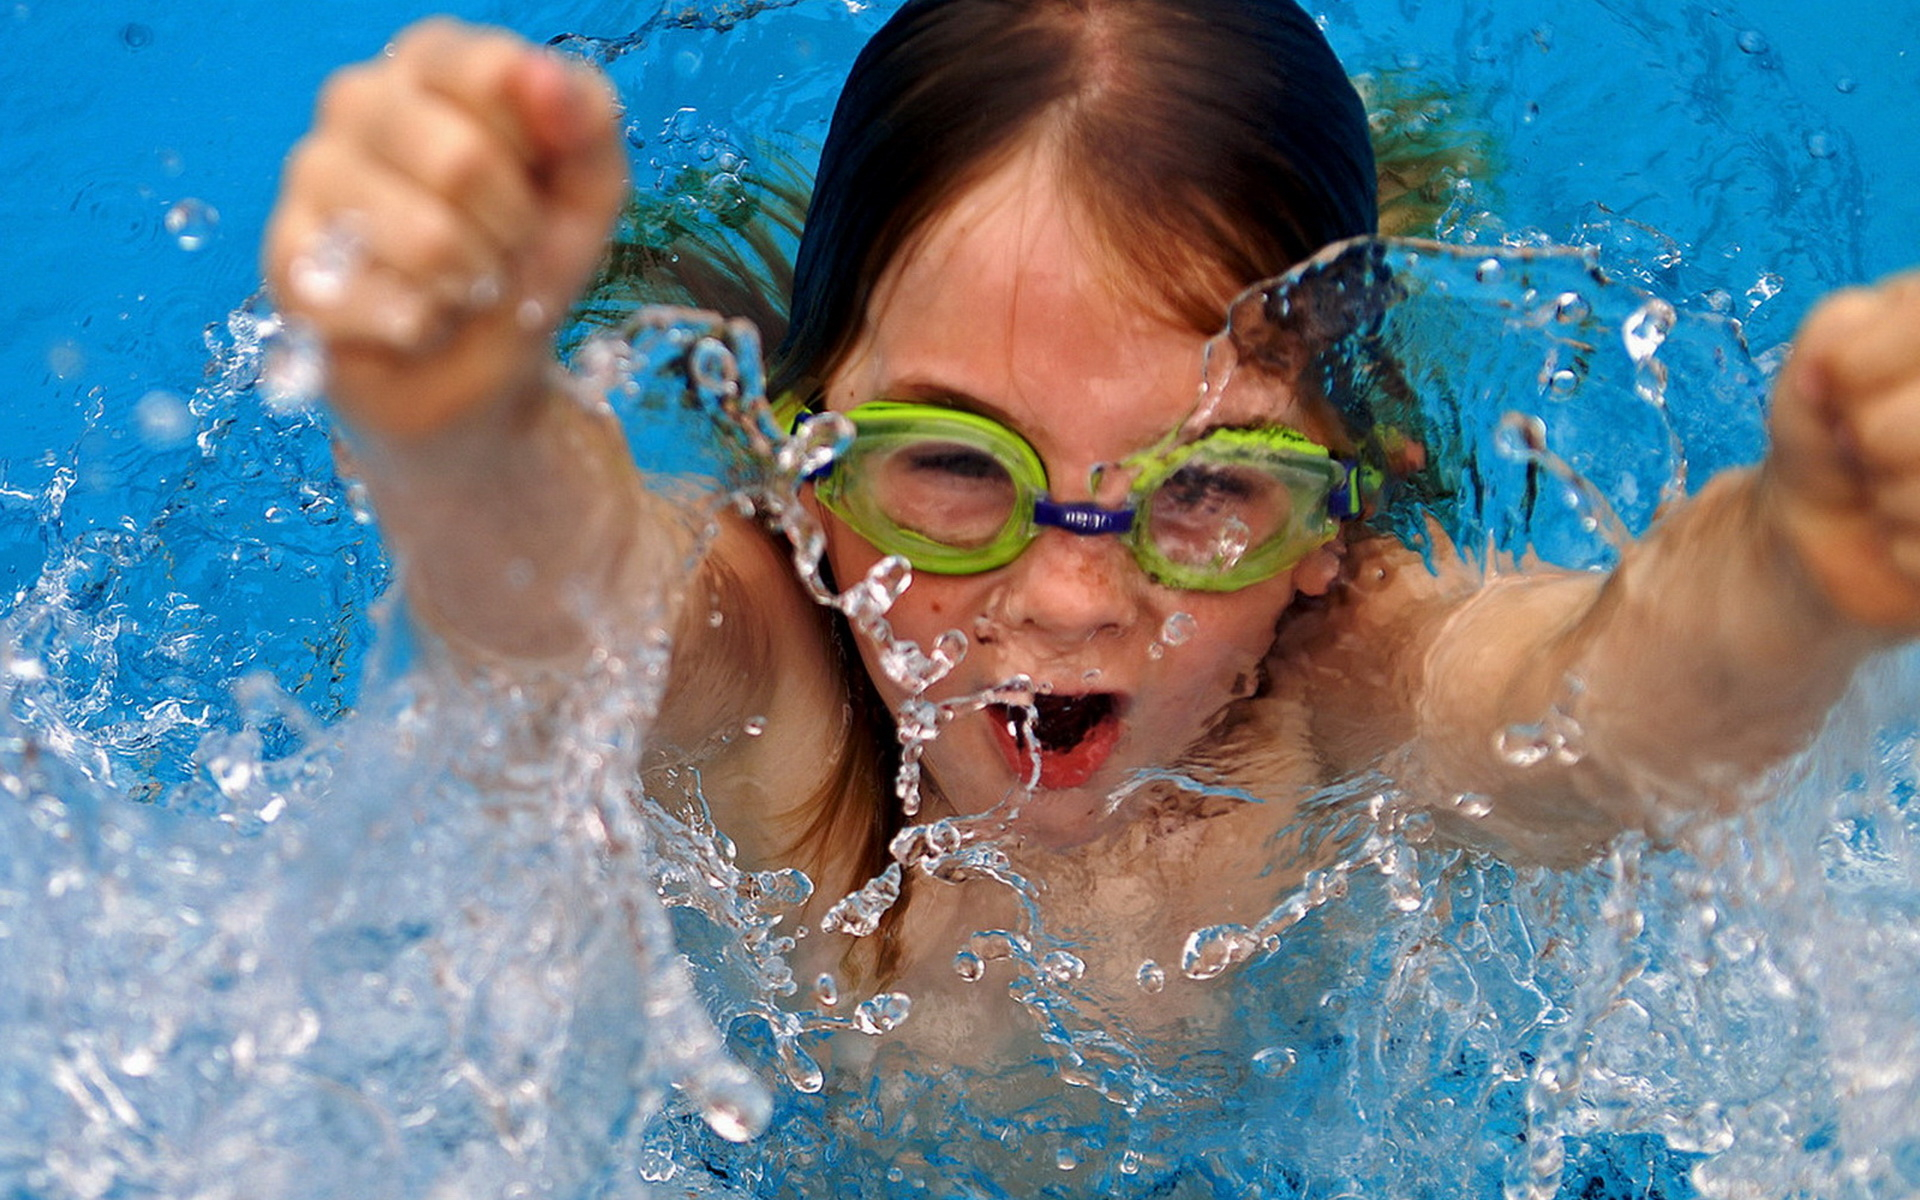 People_Children_The_floating_girl_020969_